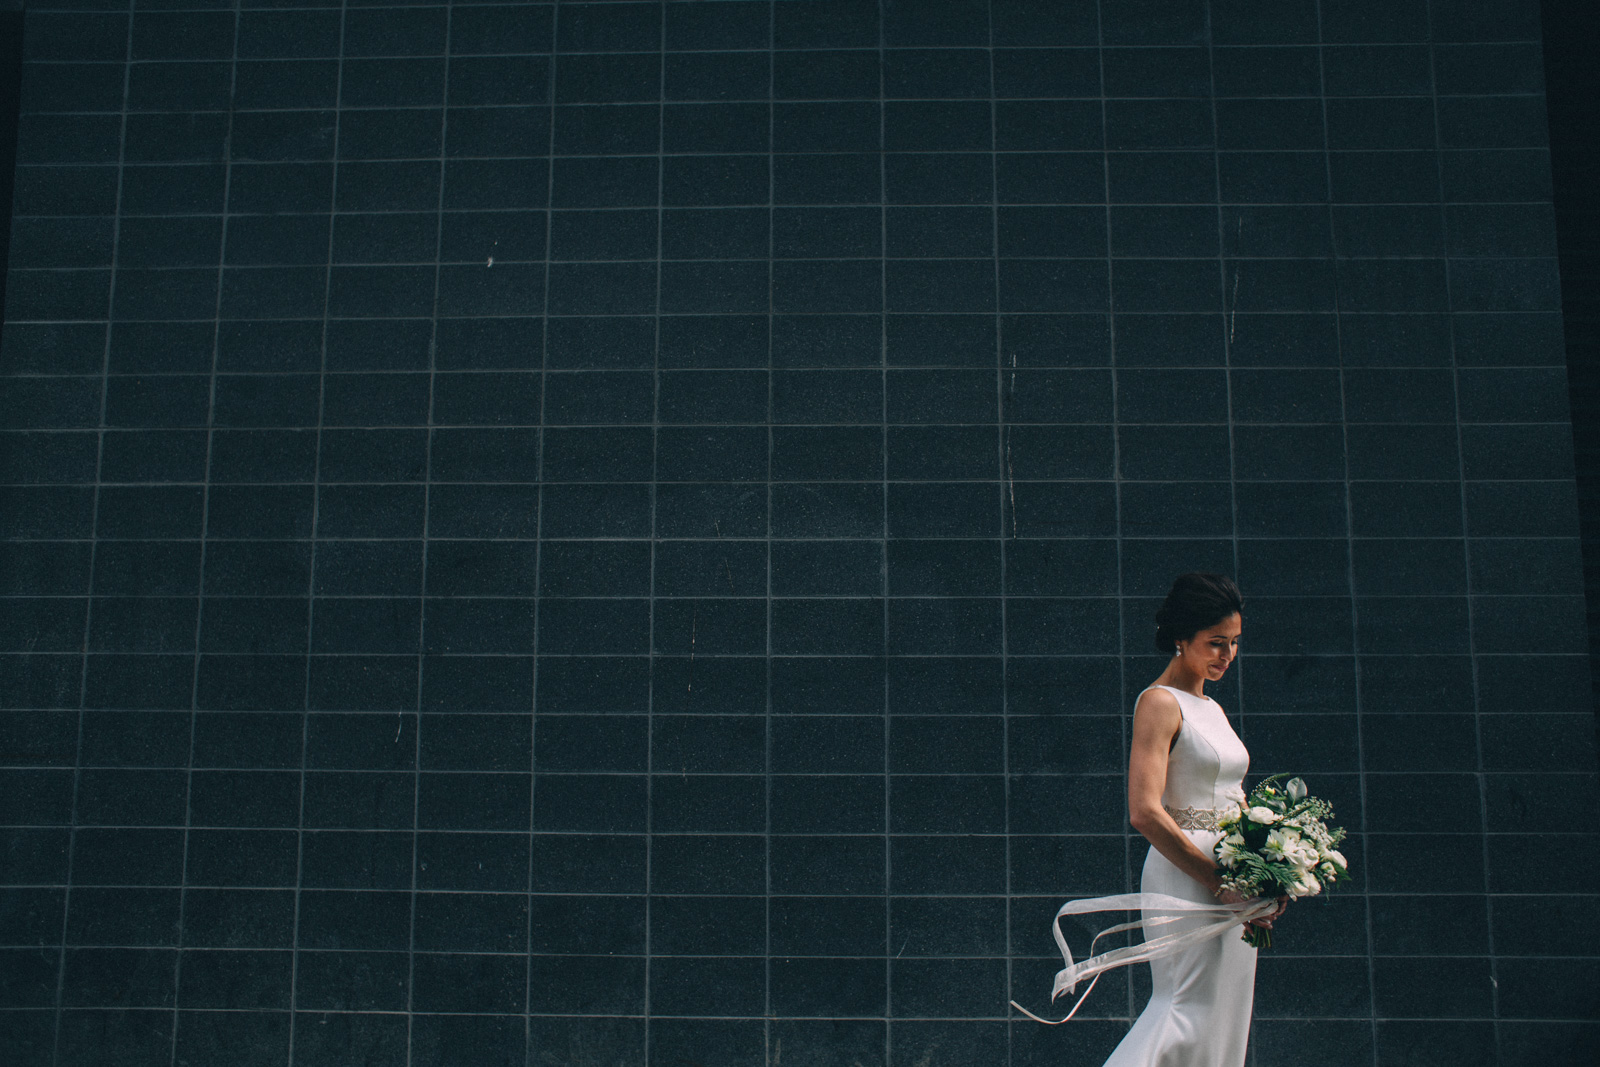 Malaparte-wedding-photography-Toronto-by-Sam-Wong-of-Artanis-Collective_39.jpg